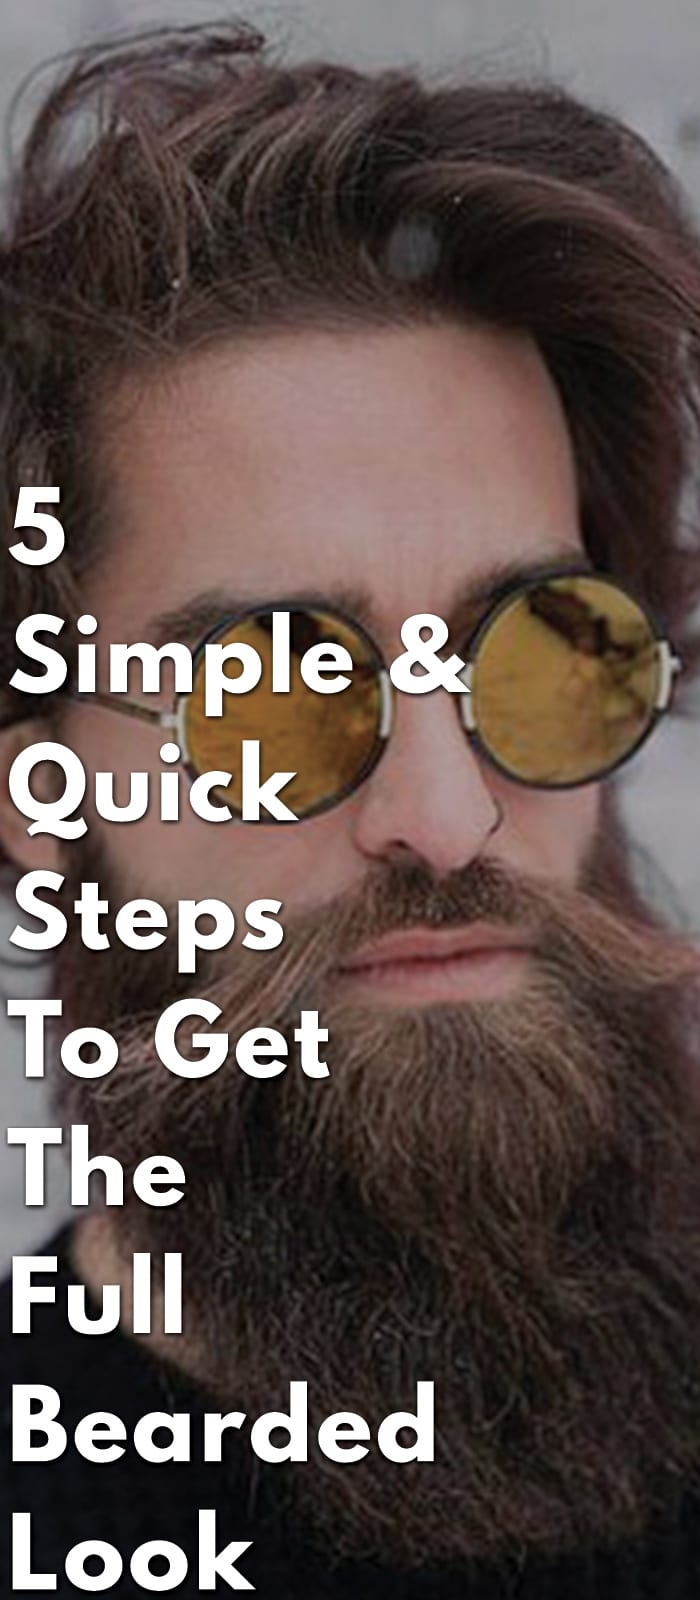 5-Simple-&-Quick-Steps-To-Get-The-Full-Bearded-Look.